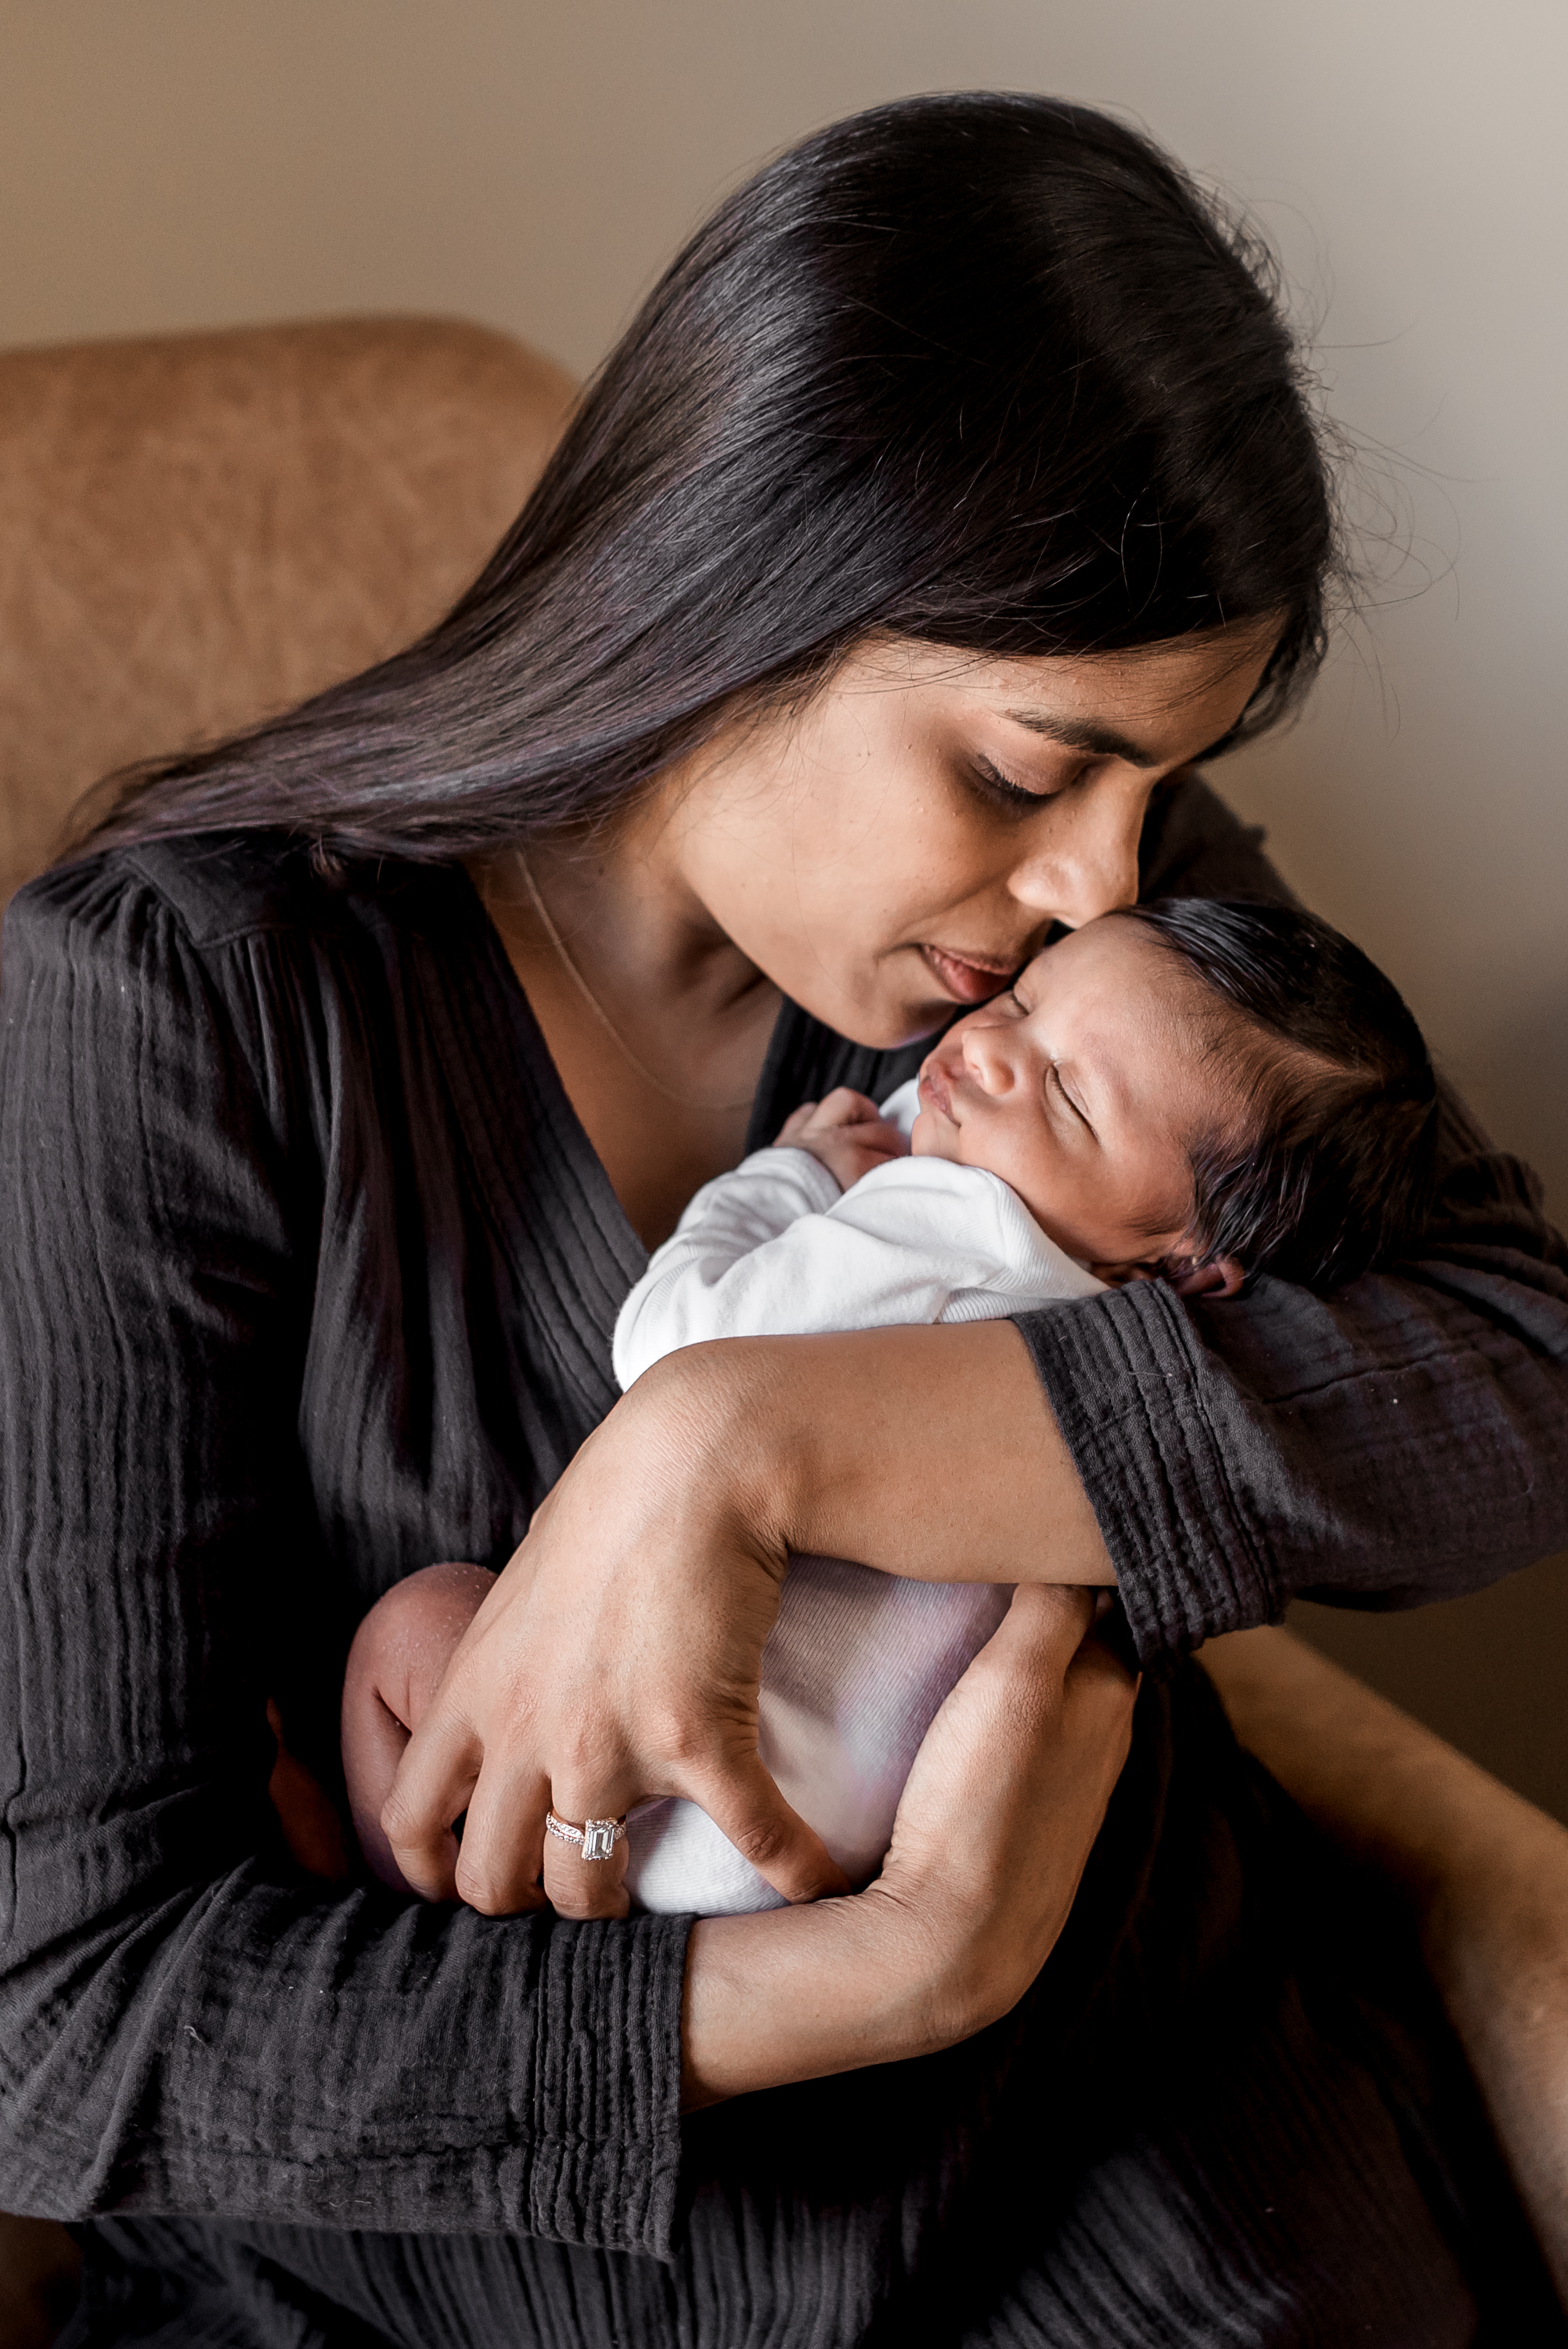 In home Houston Newborn Session with modern touches, boho accents, and vibrant colors.